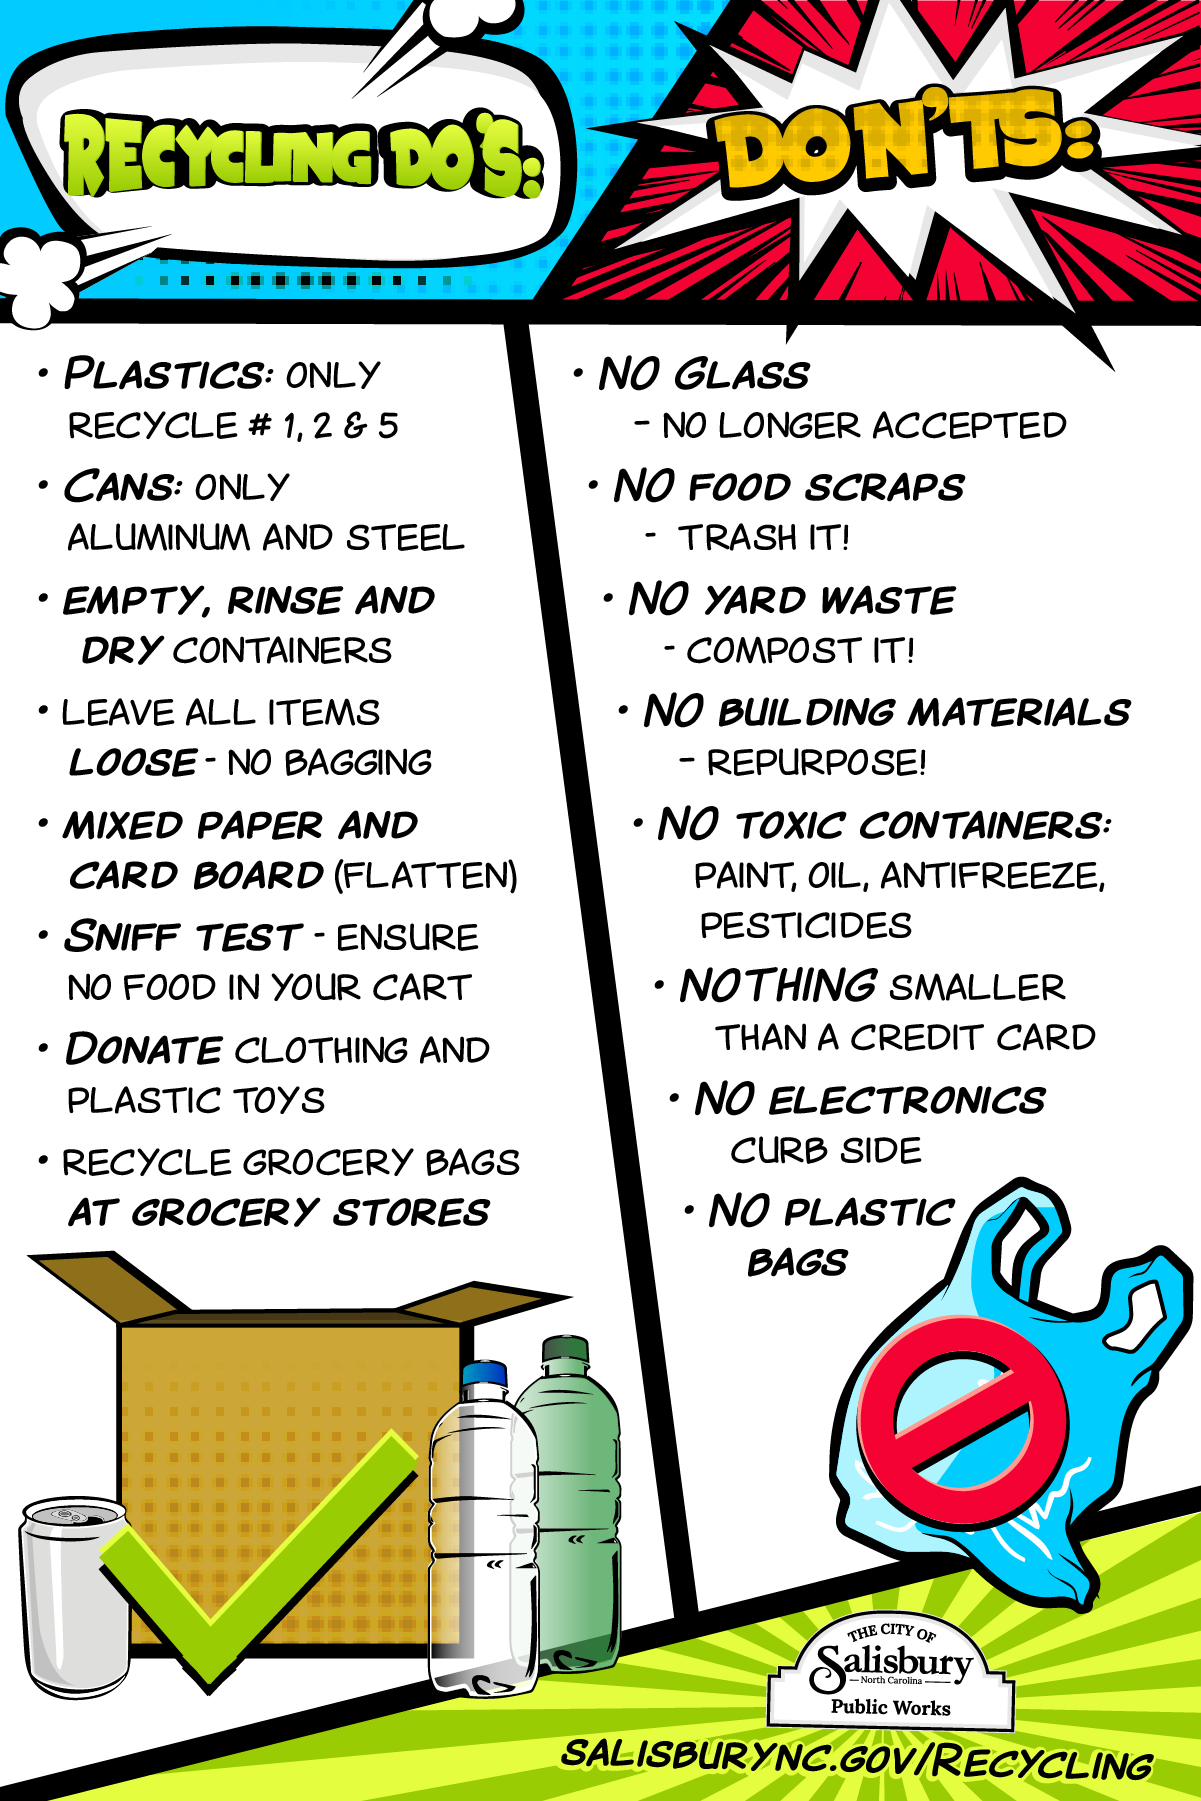 List of Recycling Do's and Don'ts in English